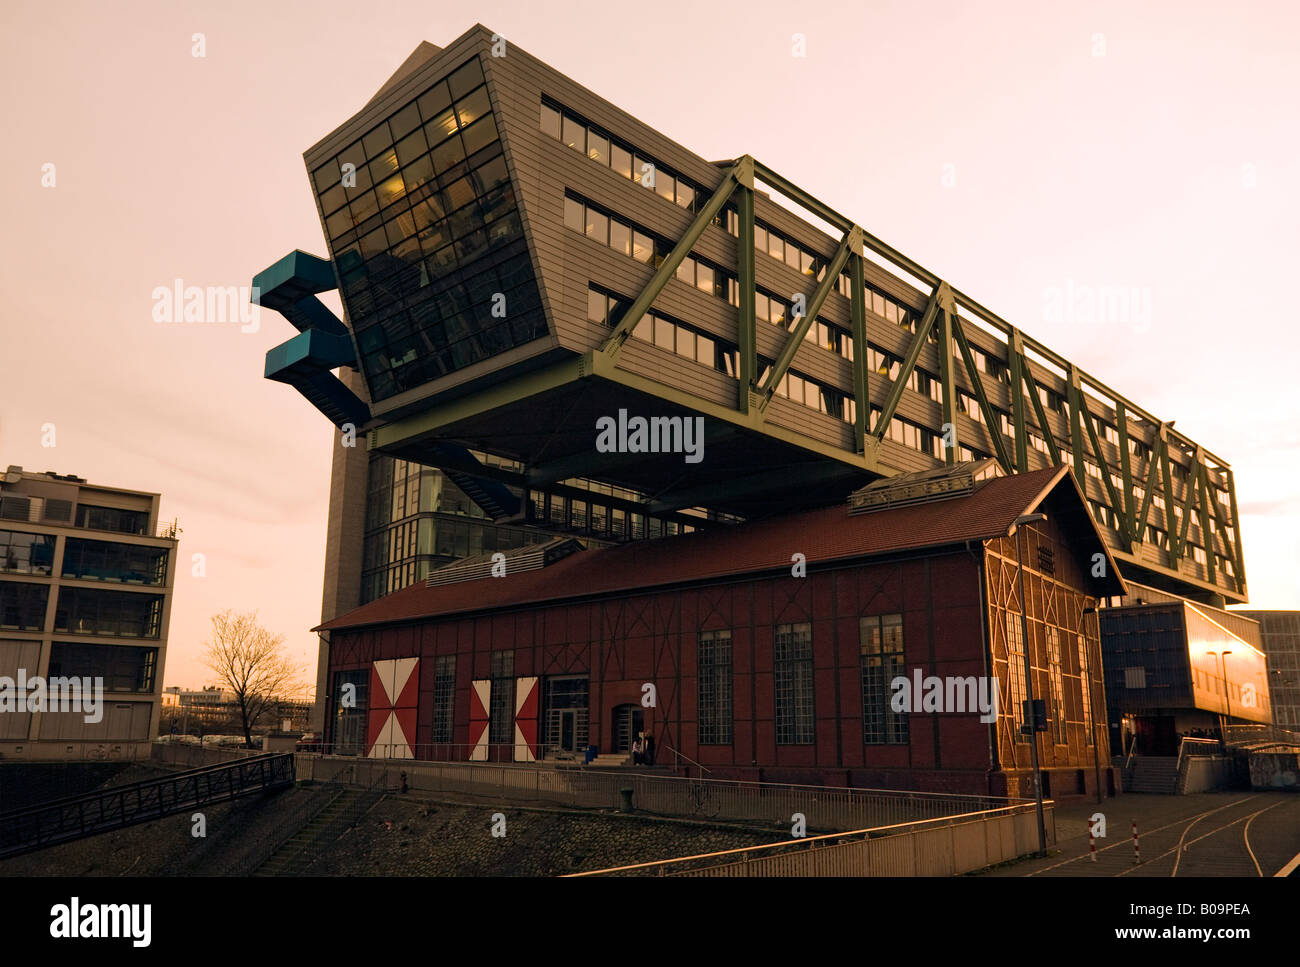 stock photo modern office building wolkenbgel at dusseldorf media harbour rented by advertising agency ogilvy mather - Ogilvy Mather Ad Agency